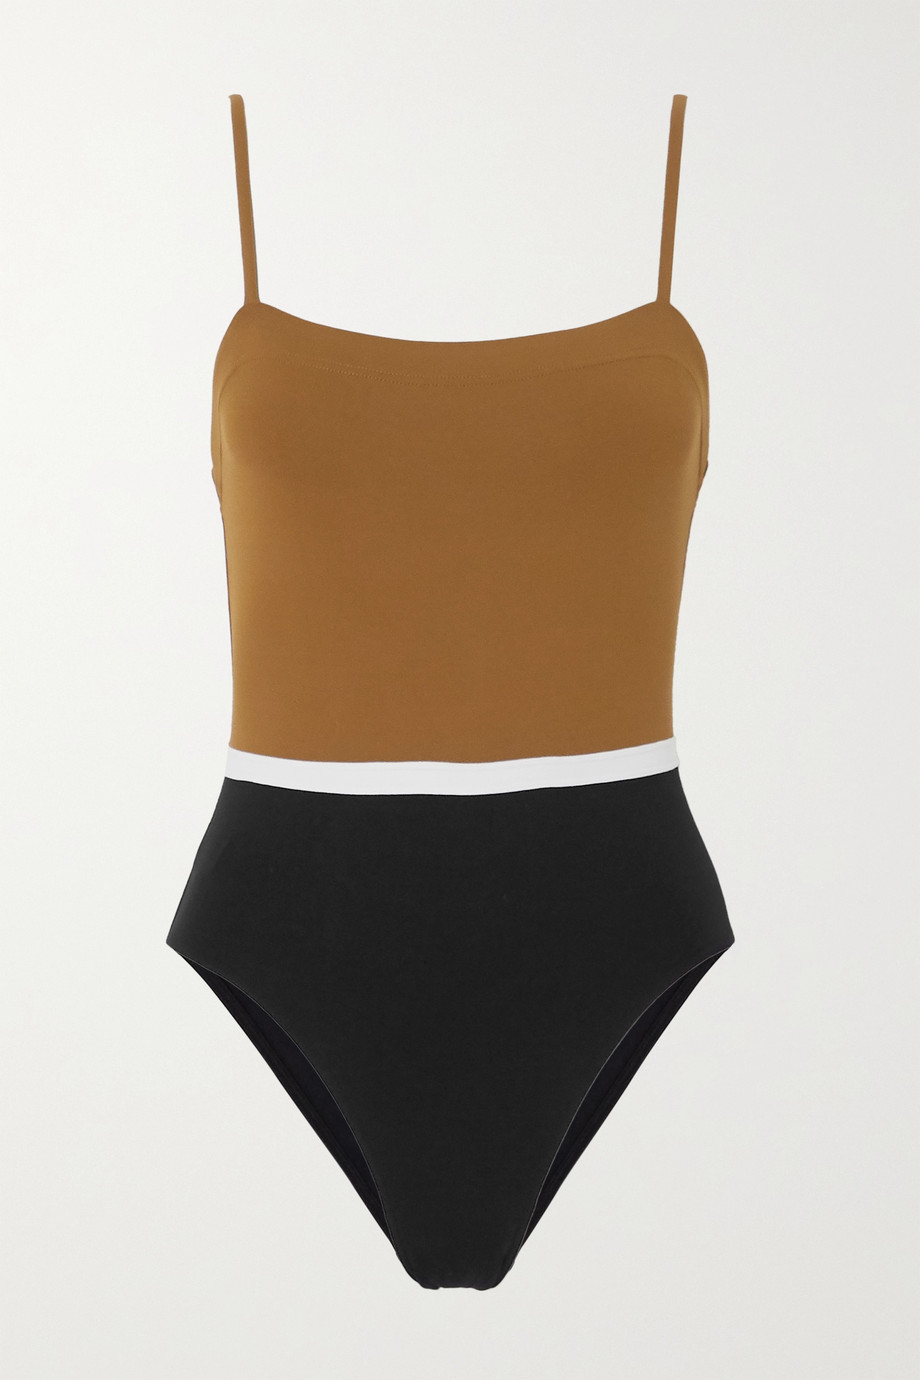 Eres Panama Ara color-block swimsuit